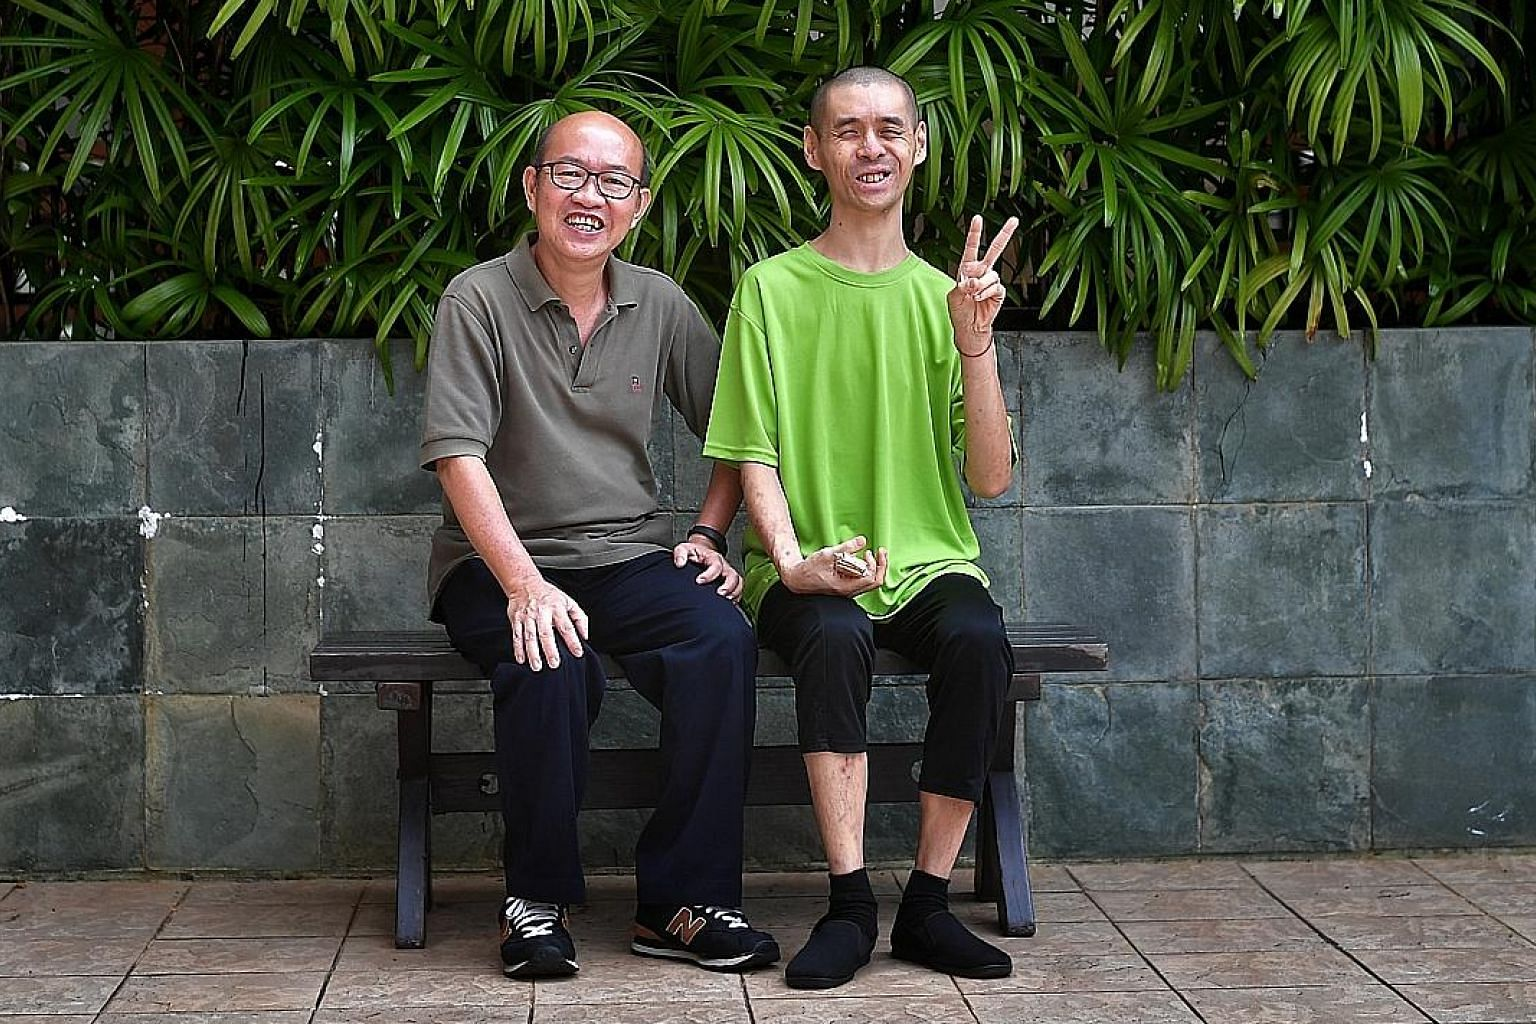 Mr Tan Ngan Seng (left) opened an account with the Special Needs Trust Company for his cousin Ong Yeow Ping, who has intellectual disability, and applied to be his deputy - which allowed him to help Mr Ong sell his inherited flat. Mr Ong lacked the m